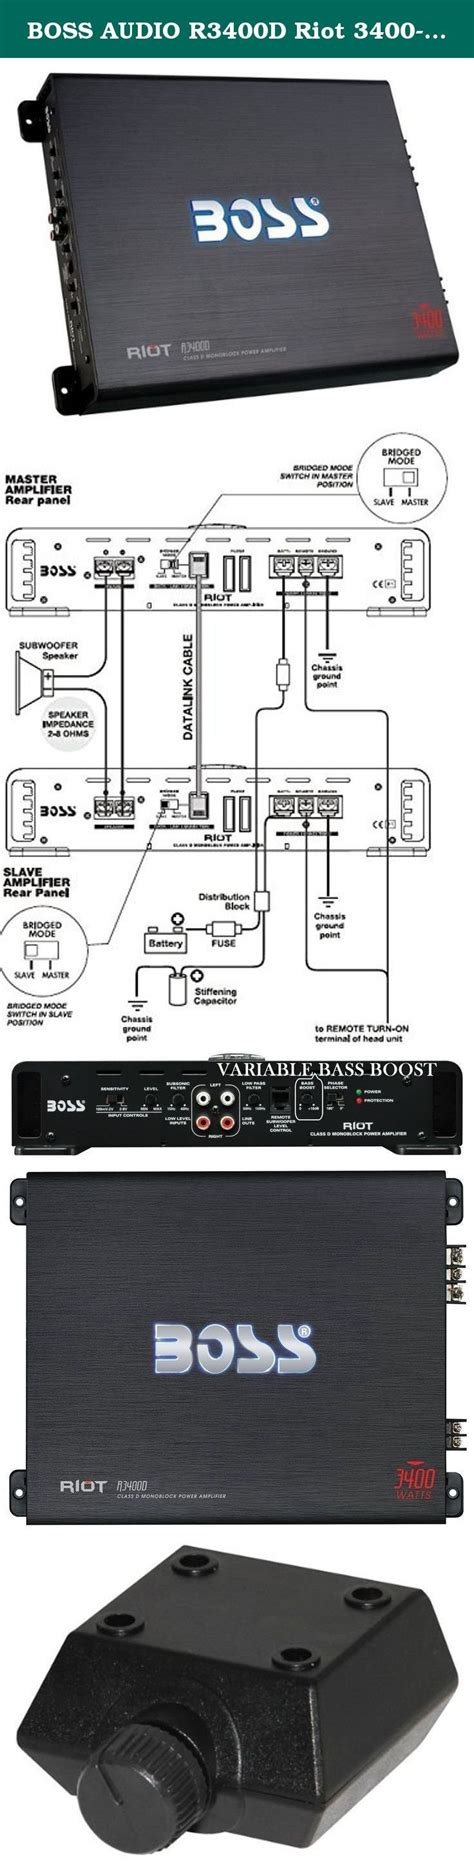 28 Hifonics Wiring Diagram Moesappaloosas Amp Brutus Best Of Image